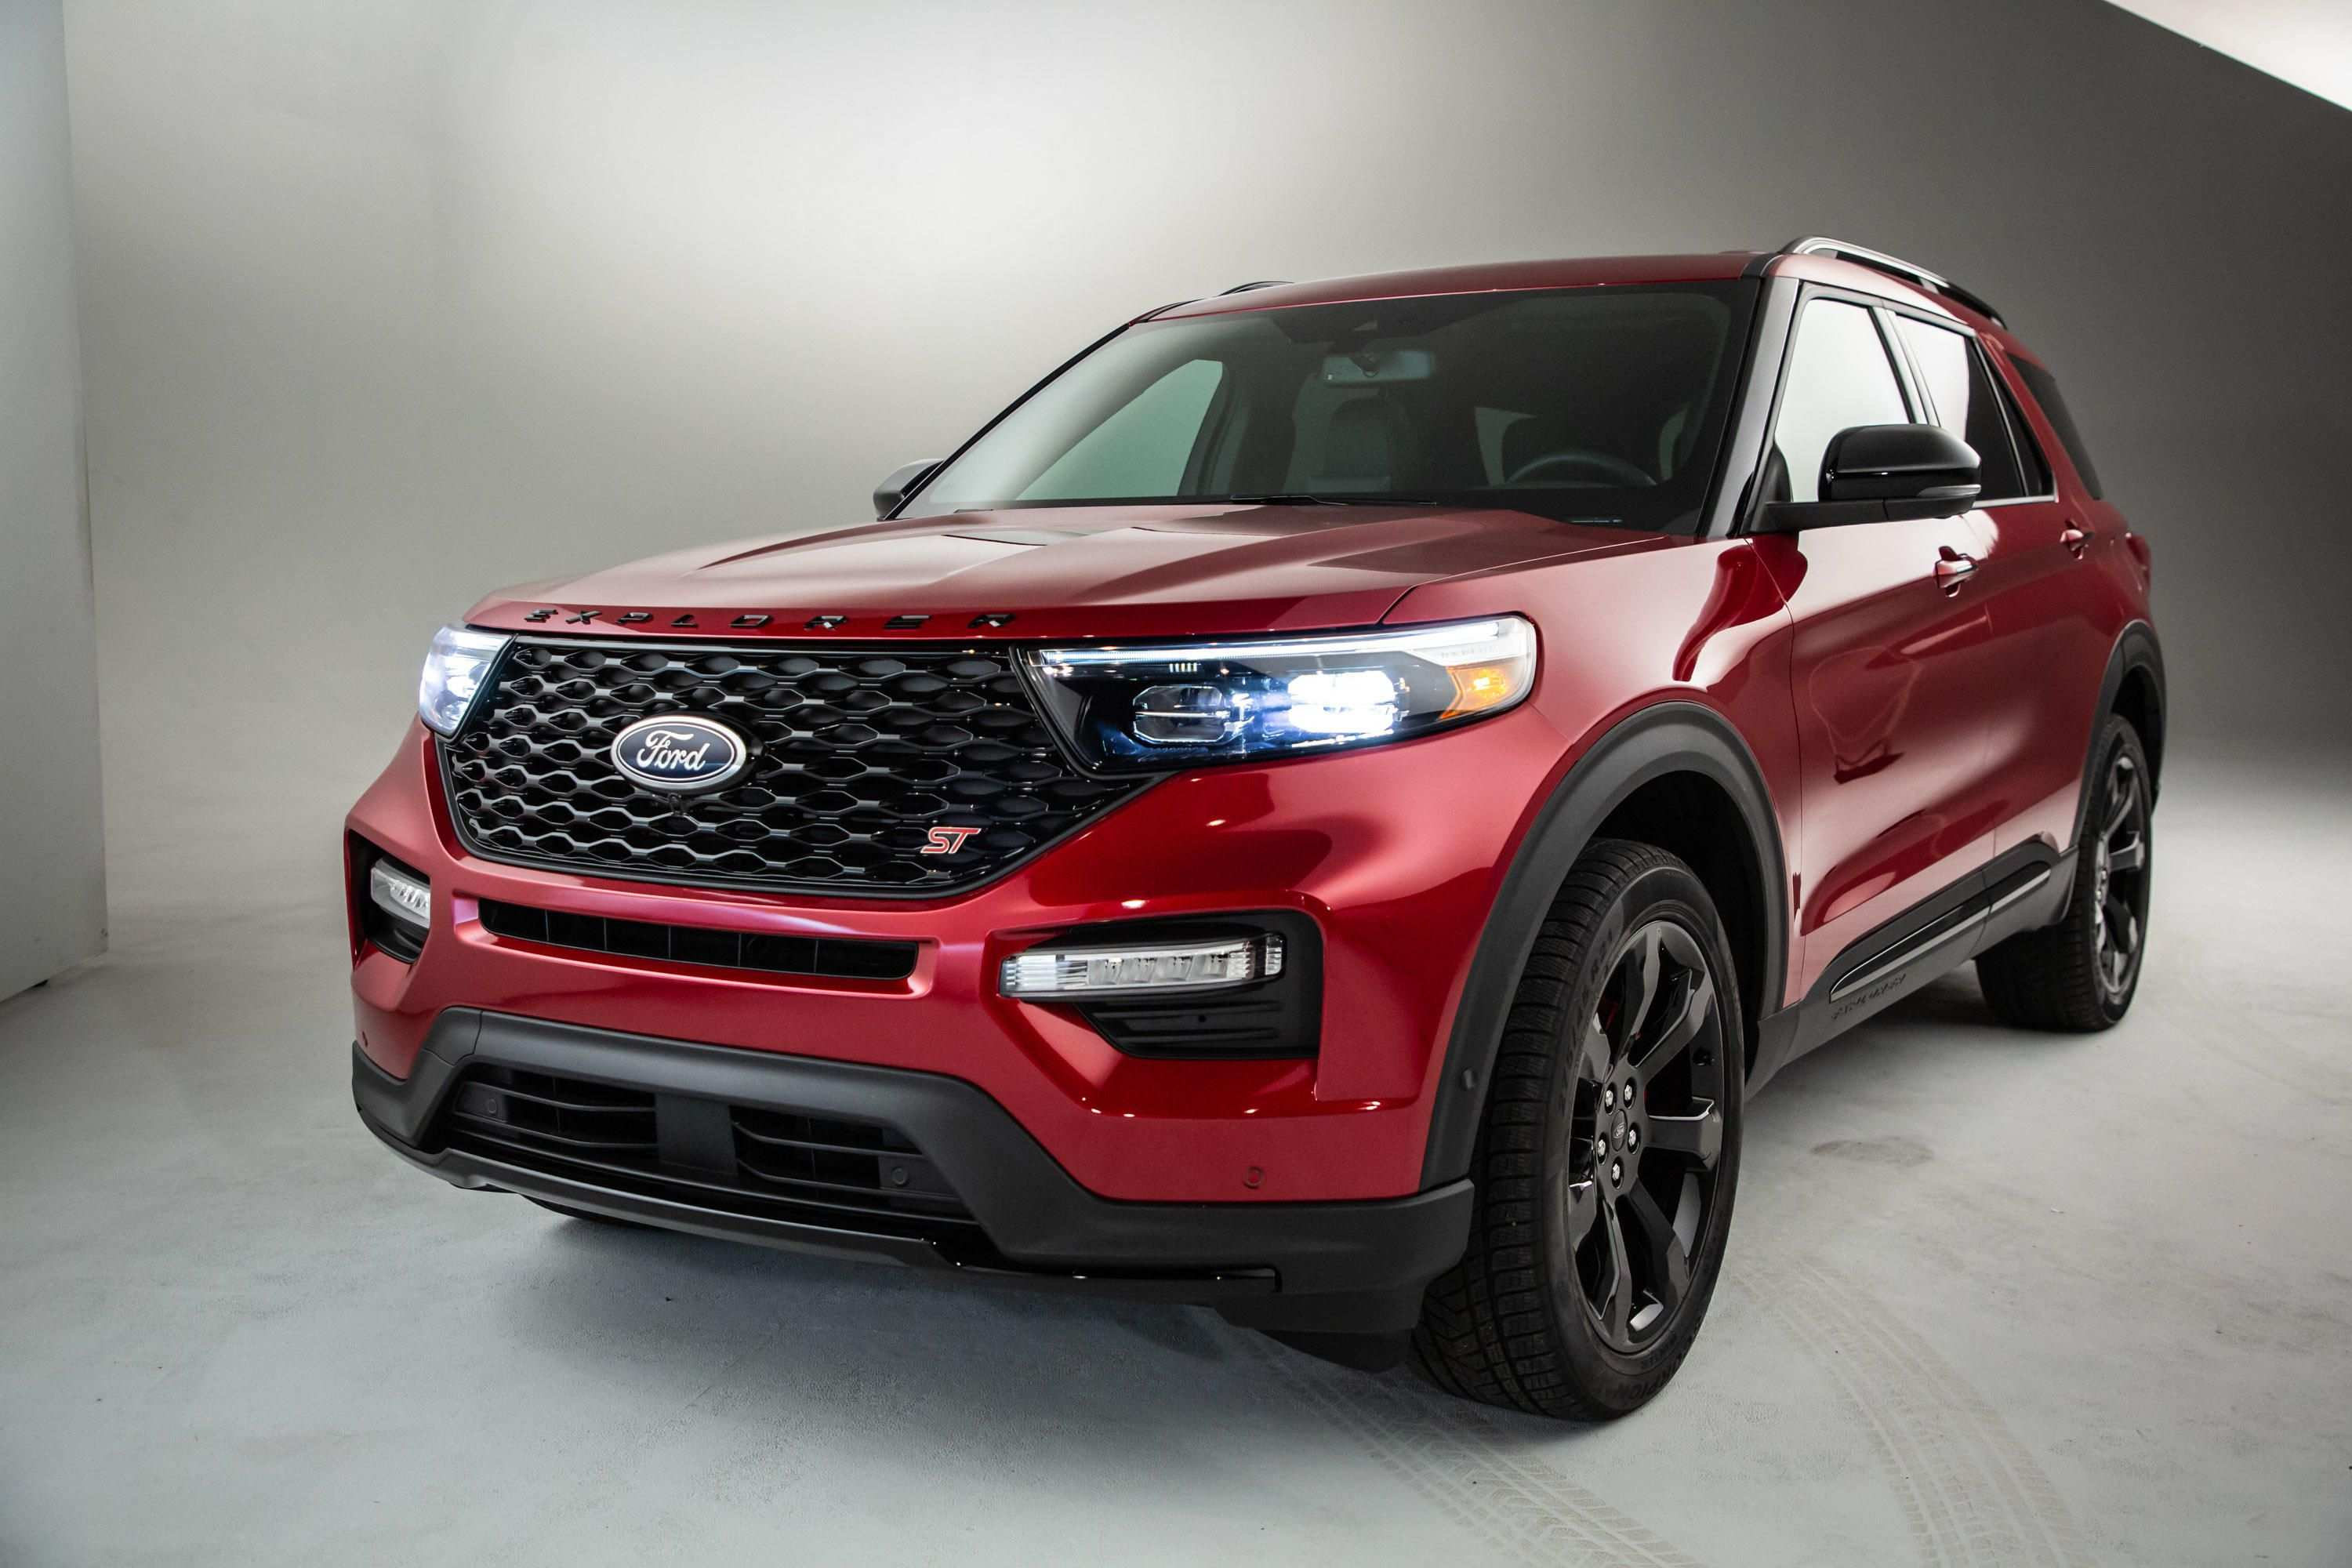 32 The 2020 Ford Explorer Youtube Overview with 2020 Ford Explorer Youtube